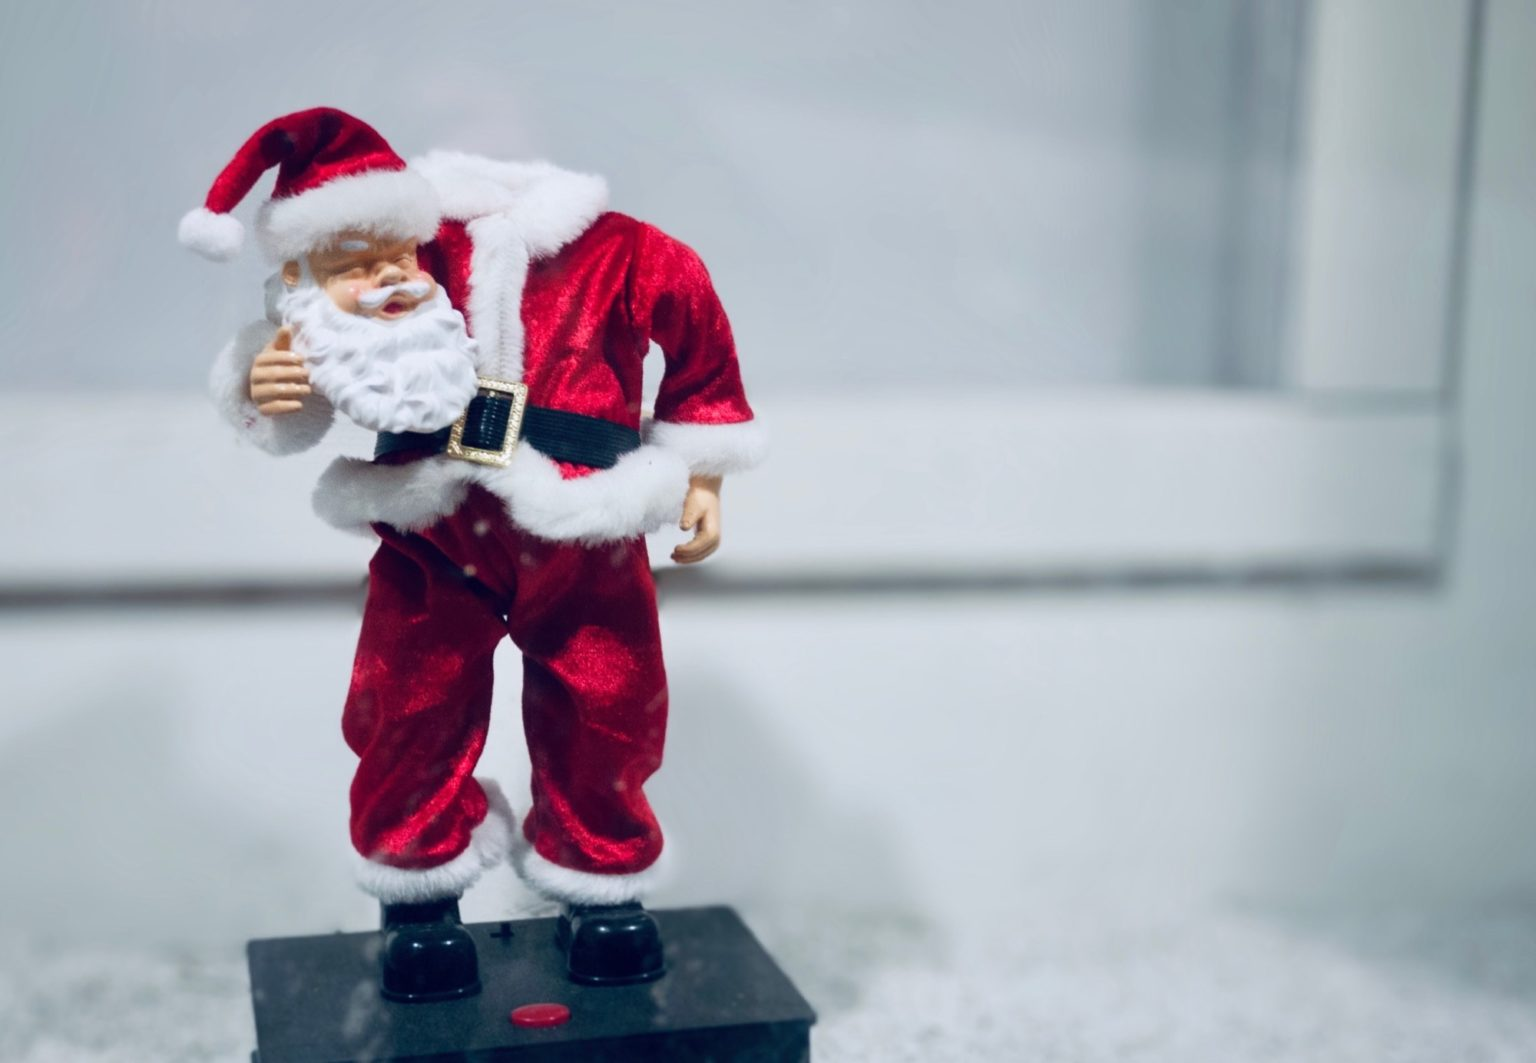 headless Santa holiday photos